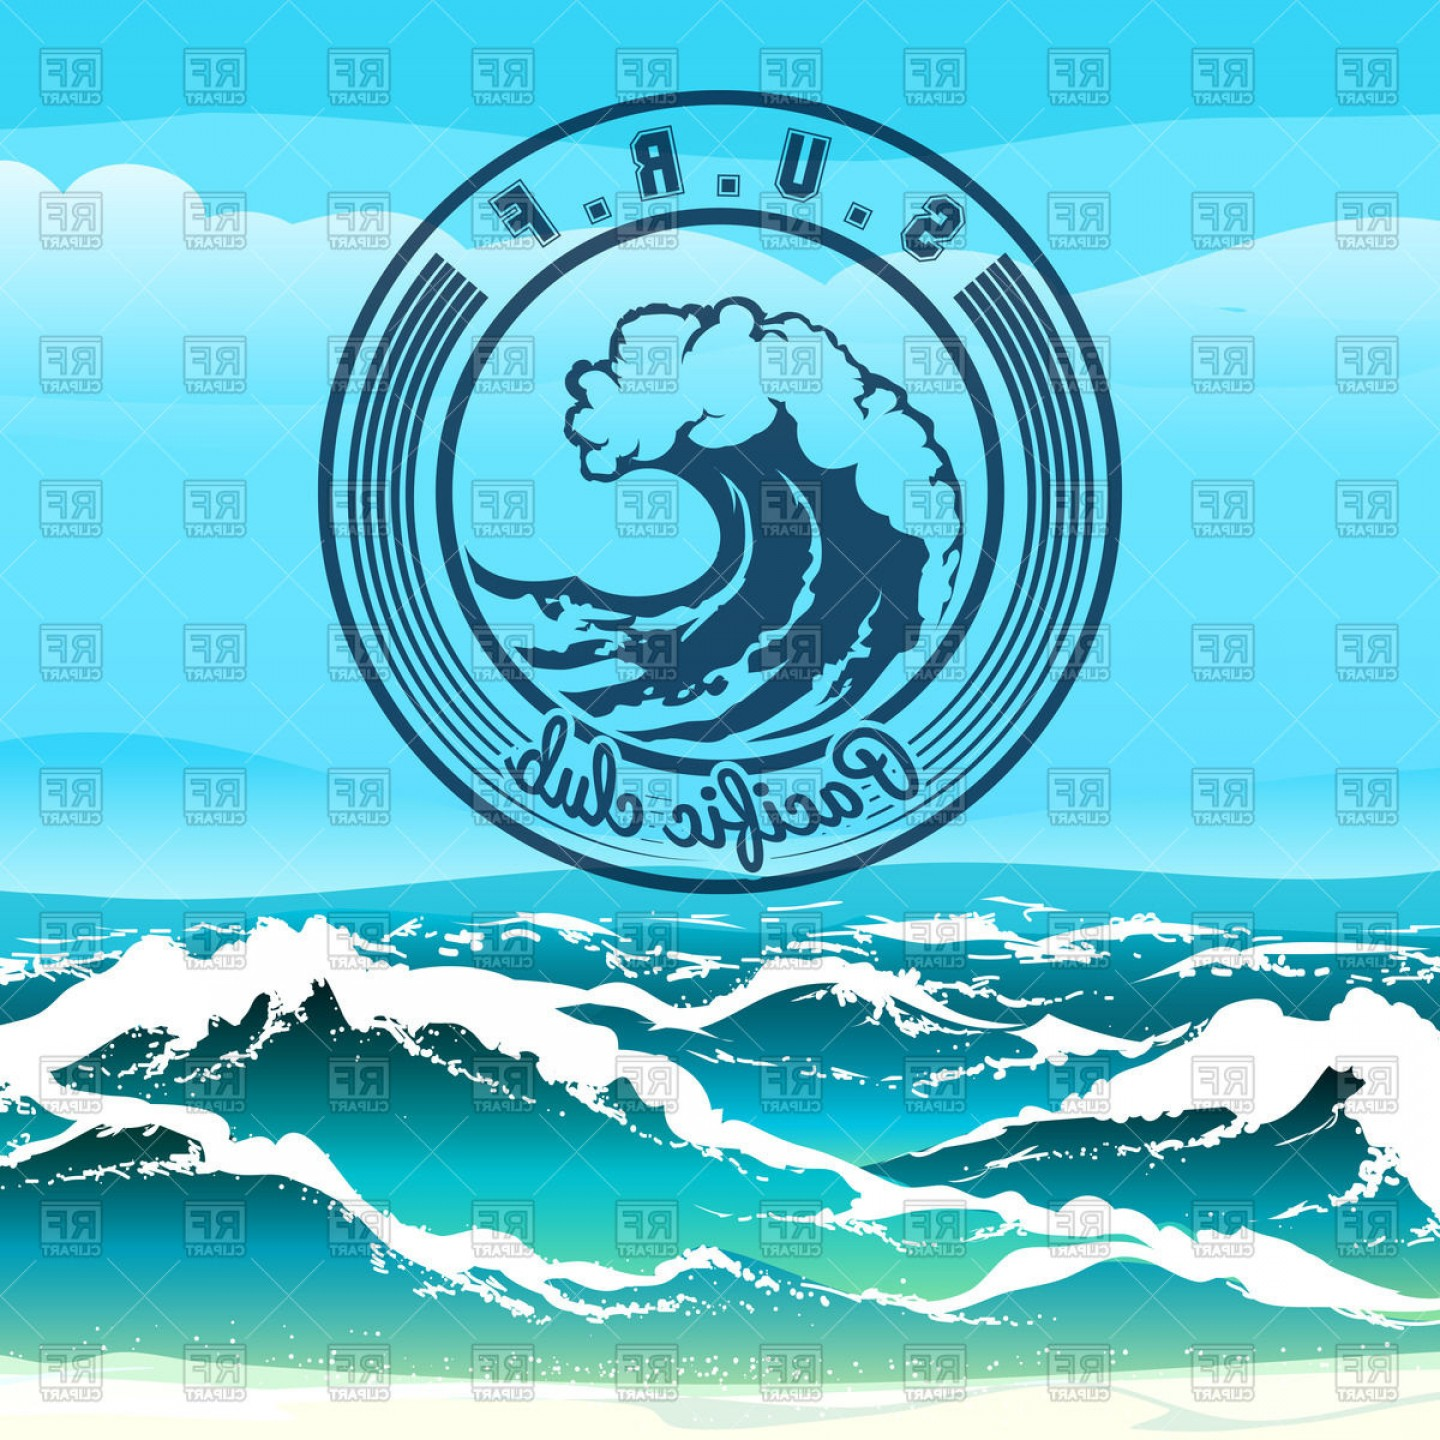 Waves With Surfer Silhouette Vector: Surf Club Emblem Stormy Tropical Seascape And Wave Vector Clipart